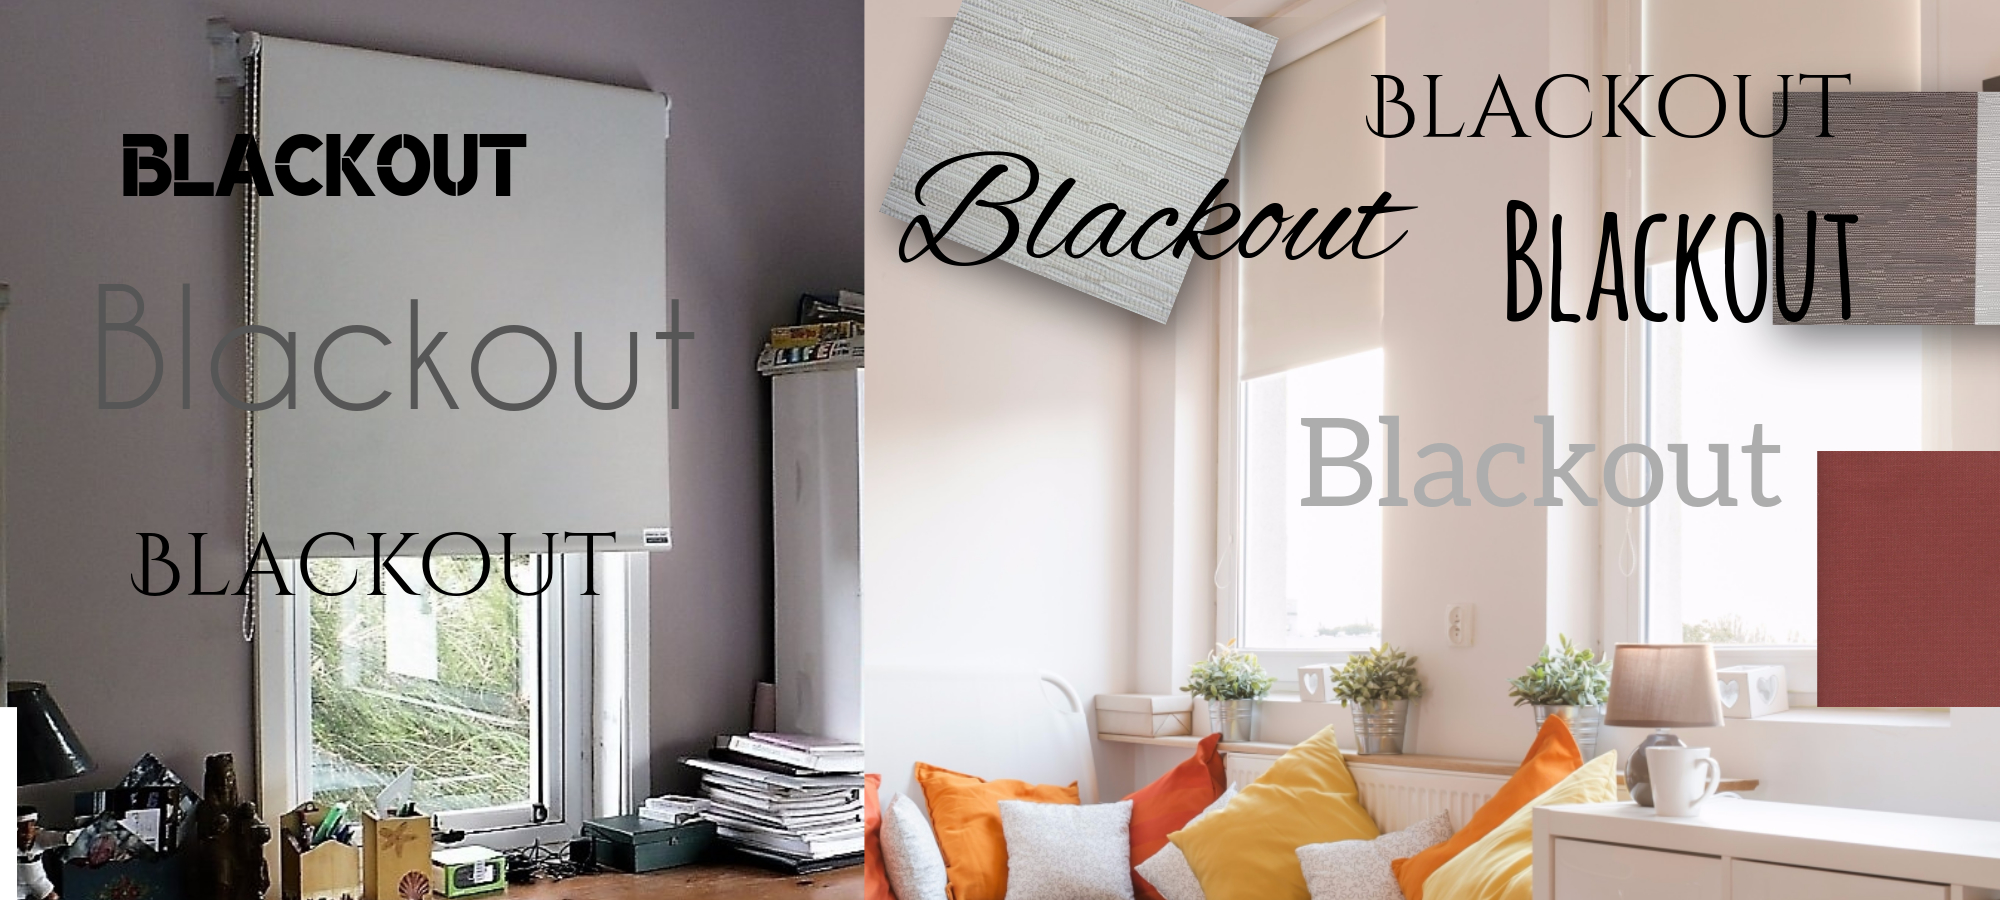 CORTINAS BLACKOUT.  COMO LIMPIARLAS